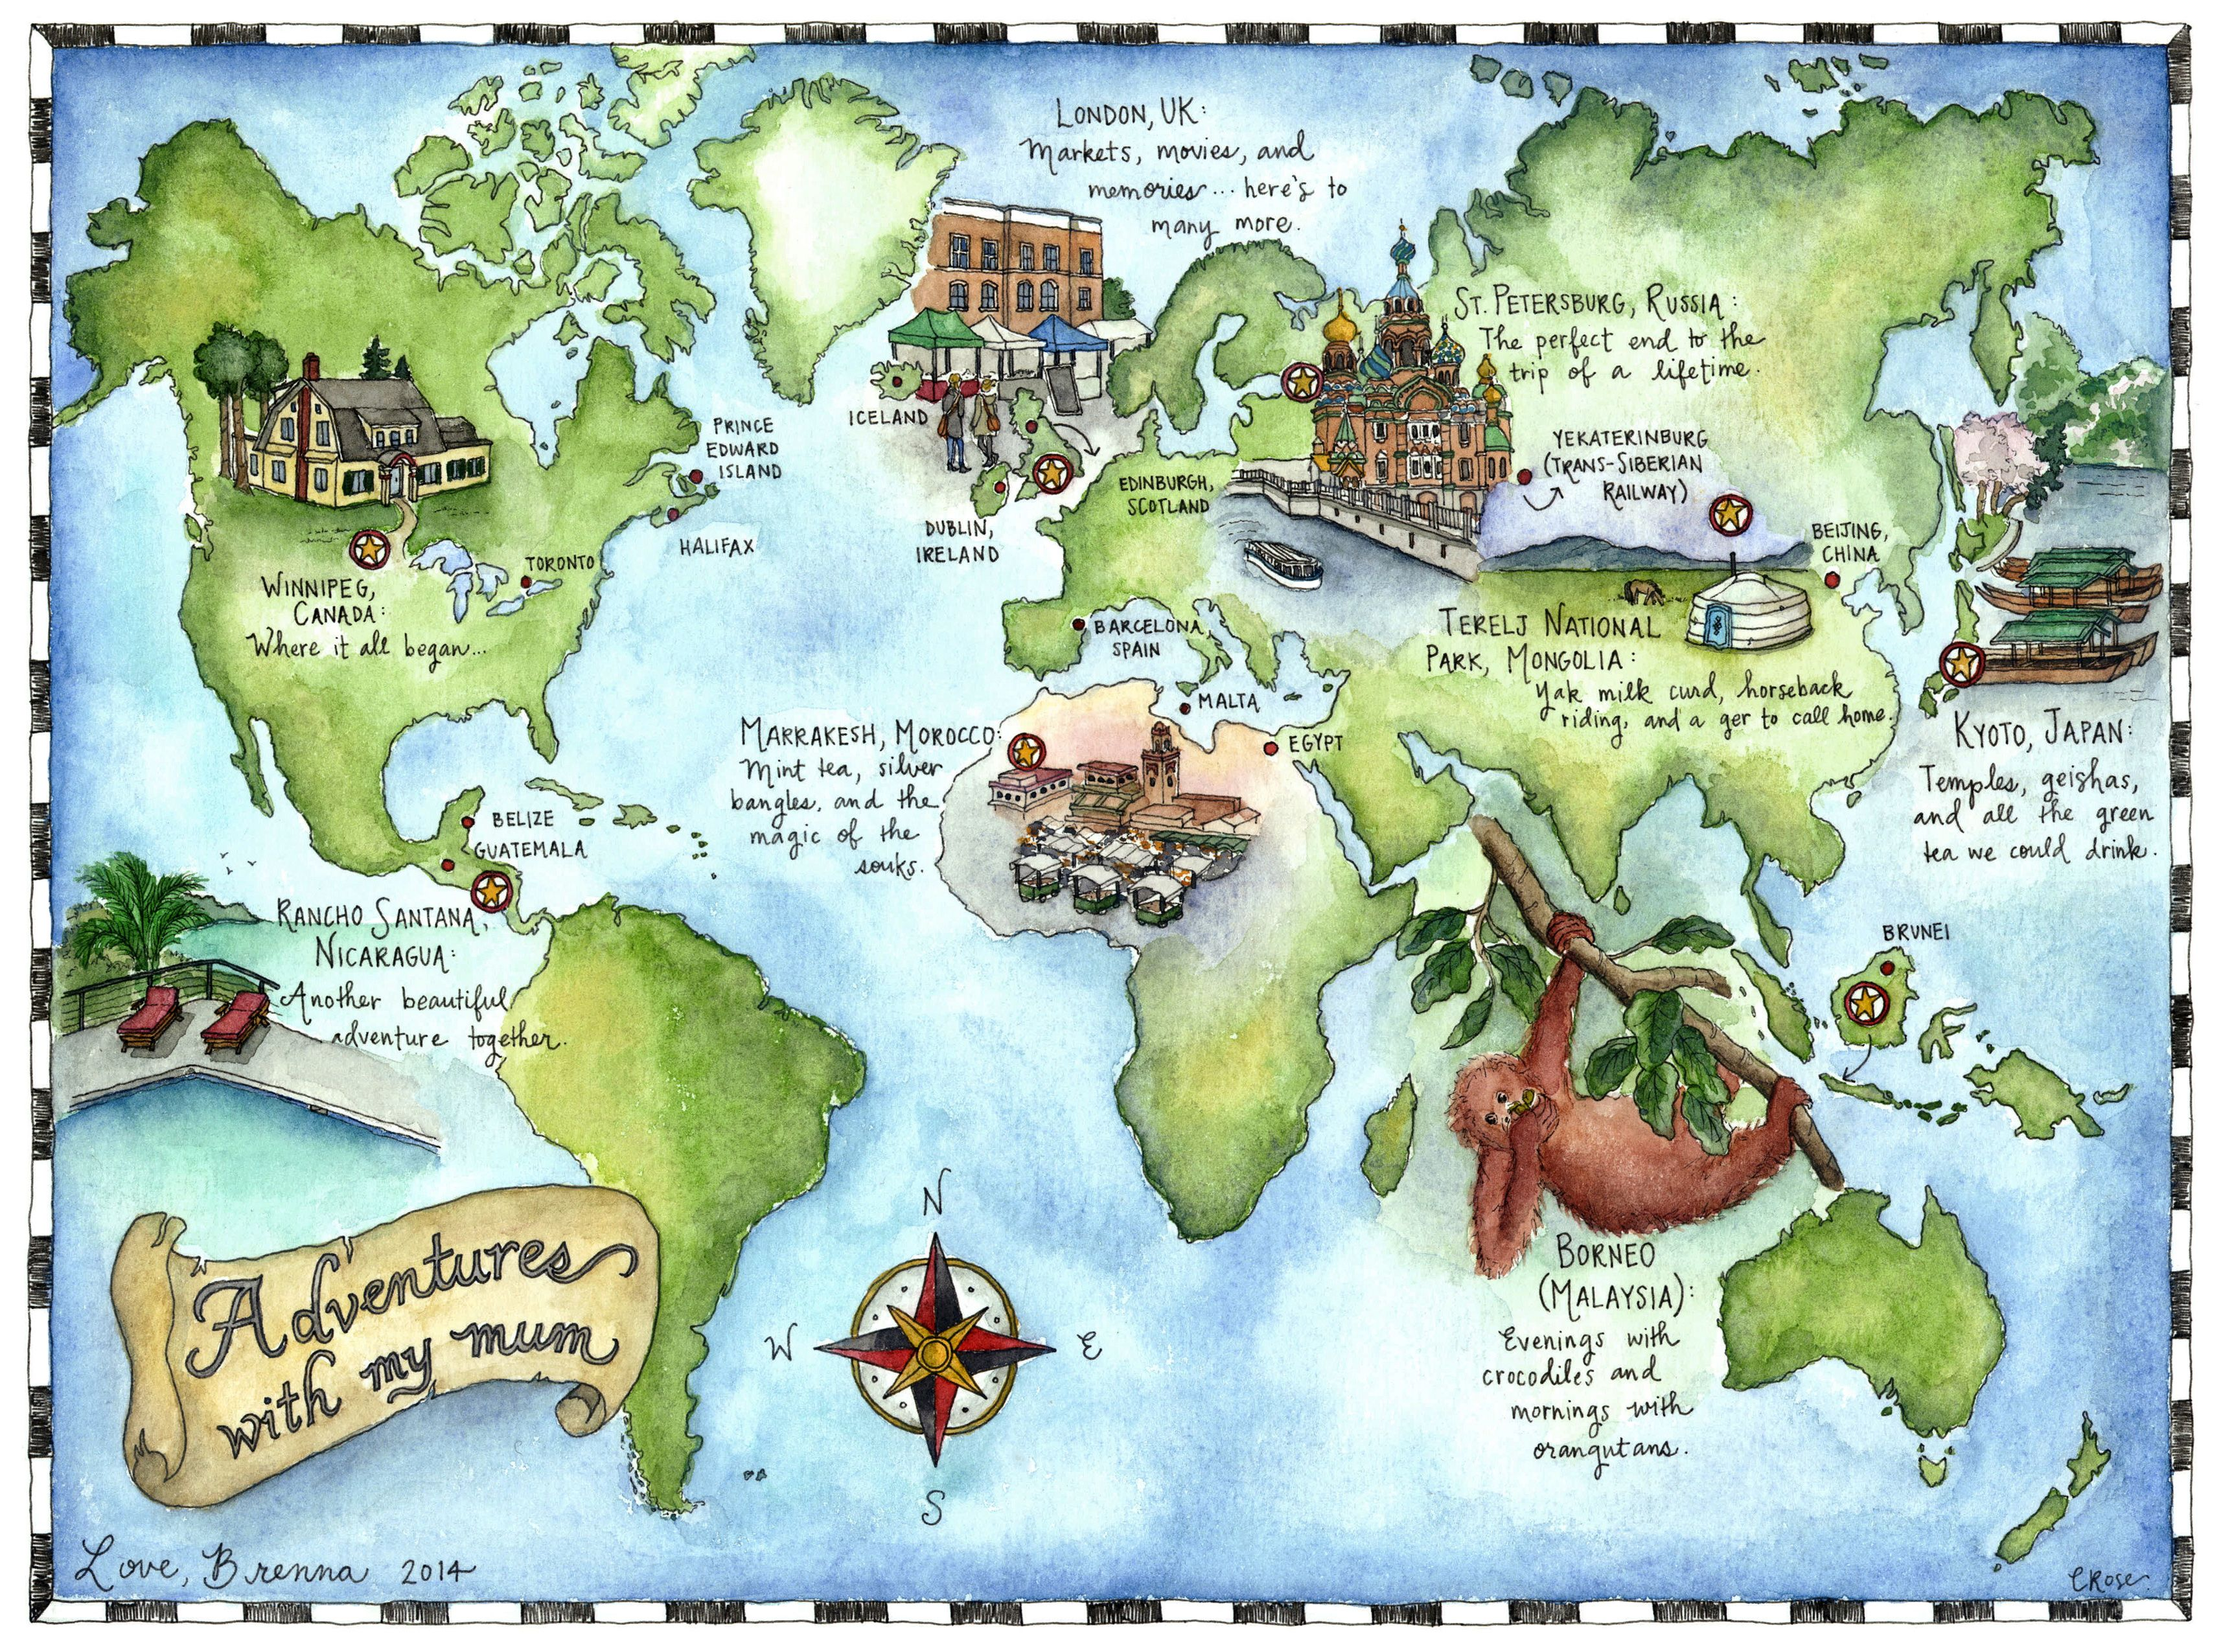 Mapbrennag 34282550 wanna be wanderer pinterest this hand drawn and illustrated world map was created using pen and watercolors for a personal client through my etsy shop gumiabroncs Gallery